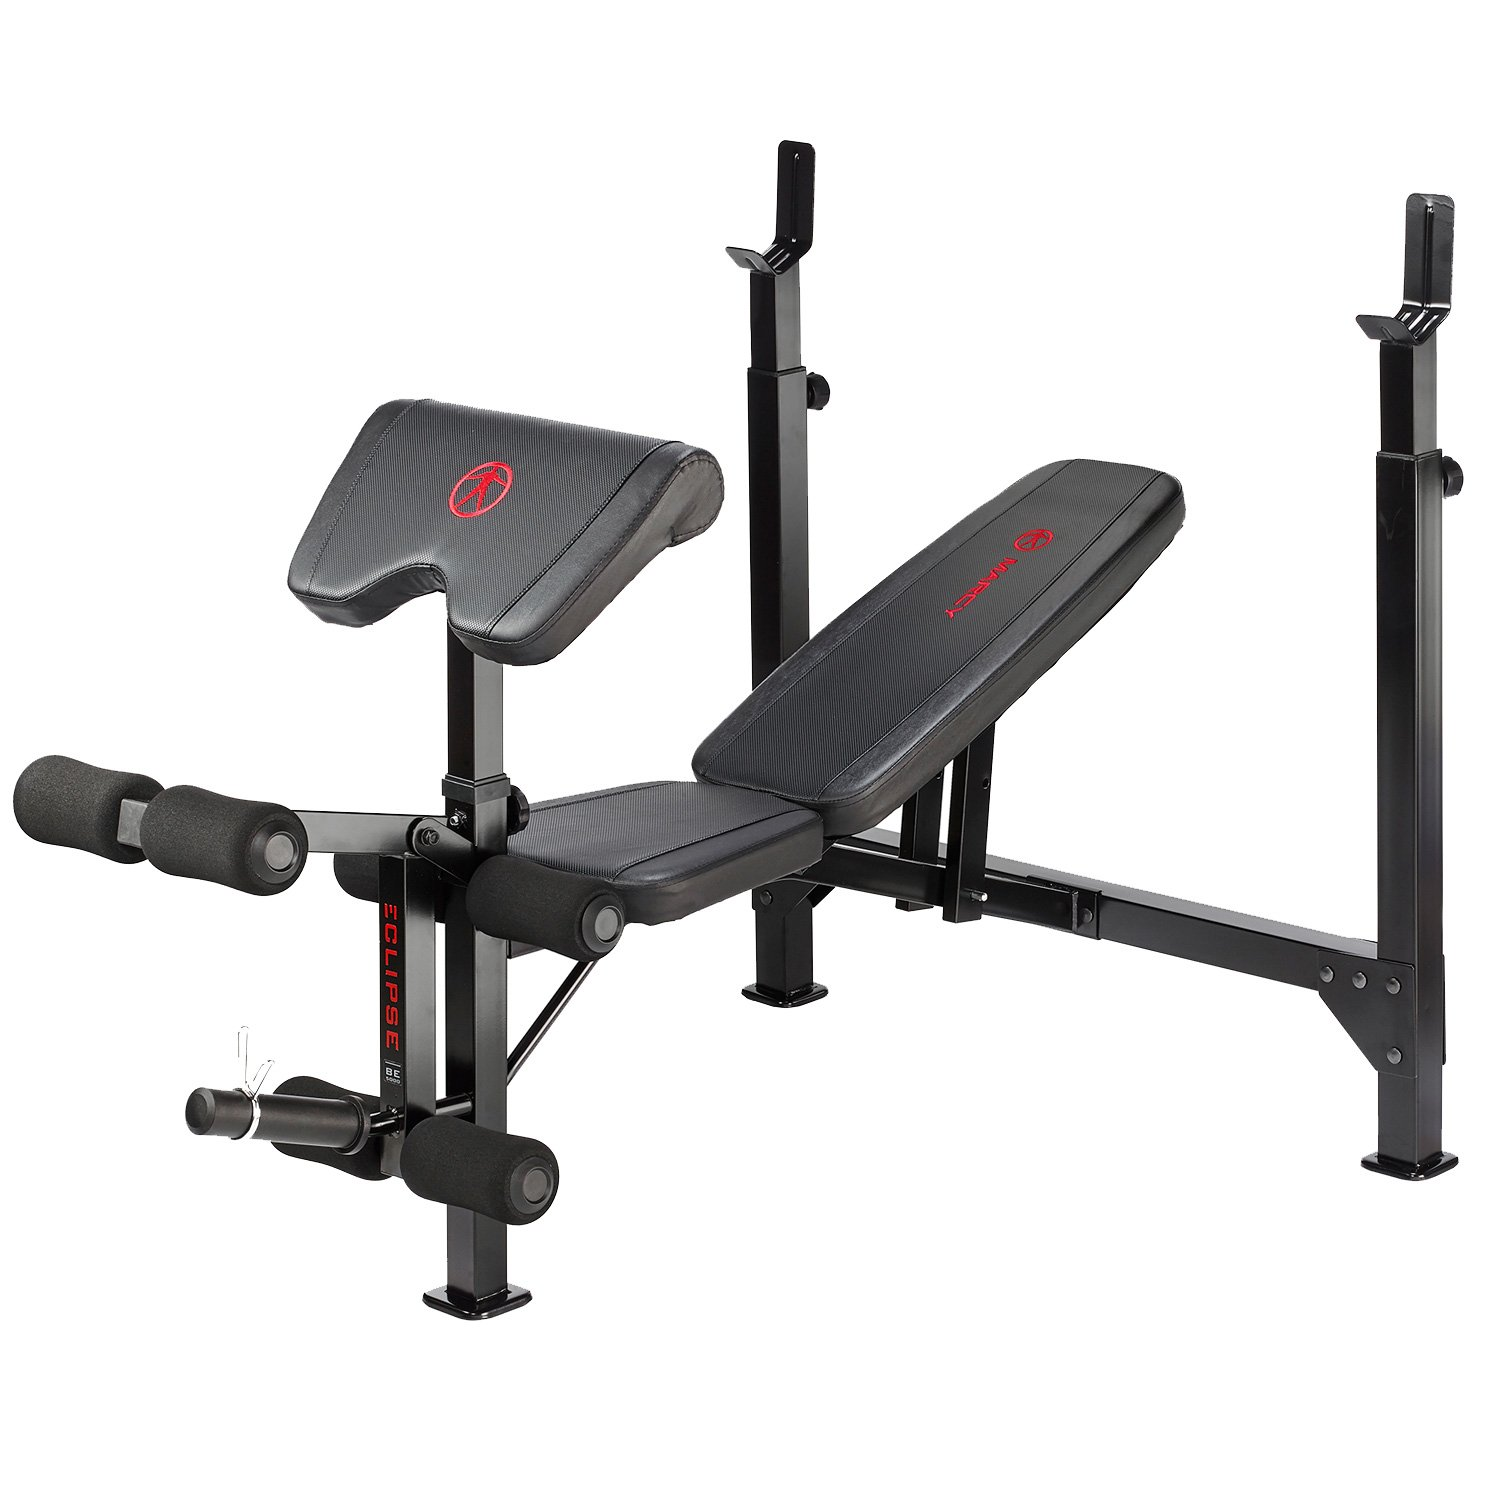 mit set langhantelset sports bench gorilla hantelbank with kg weight vinyl lifting